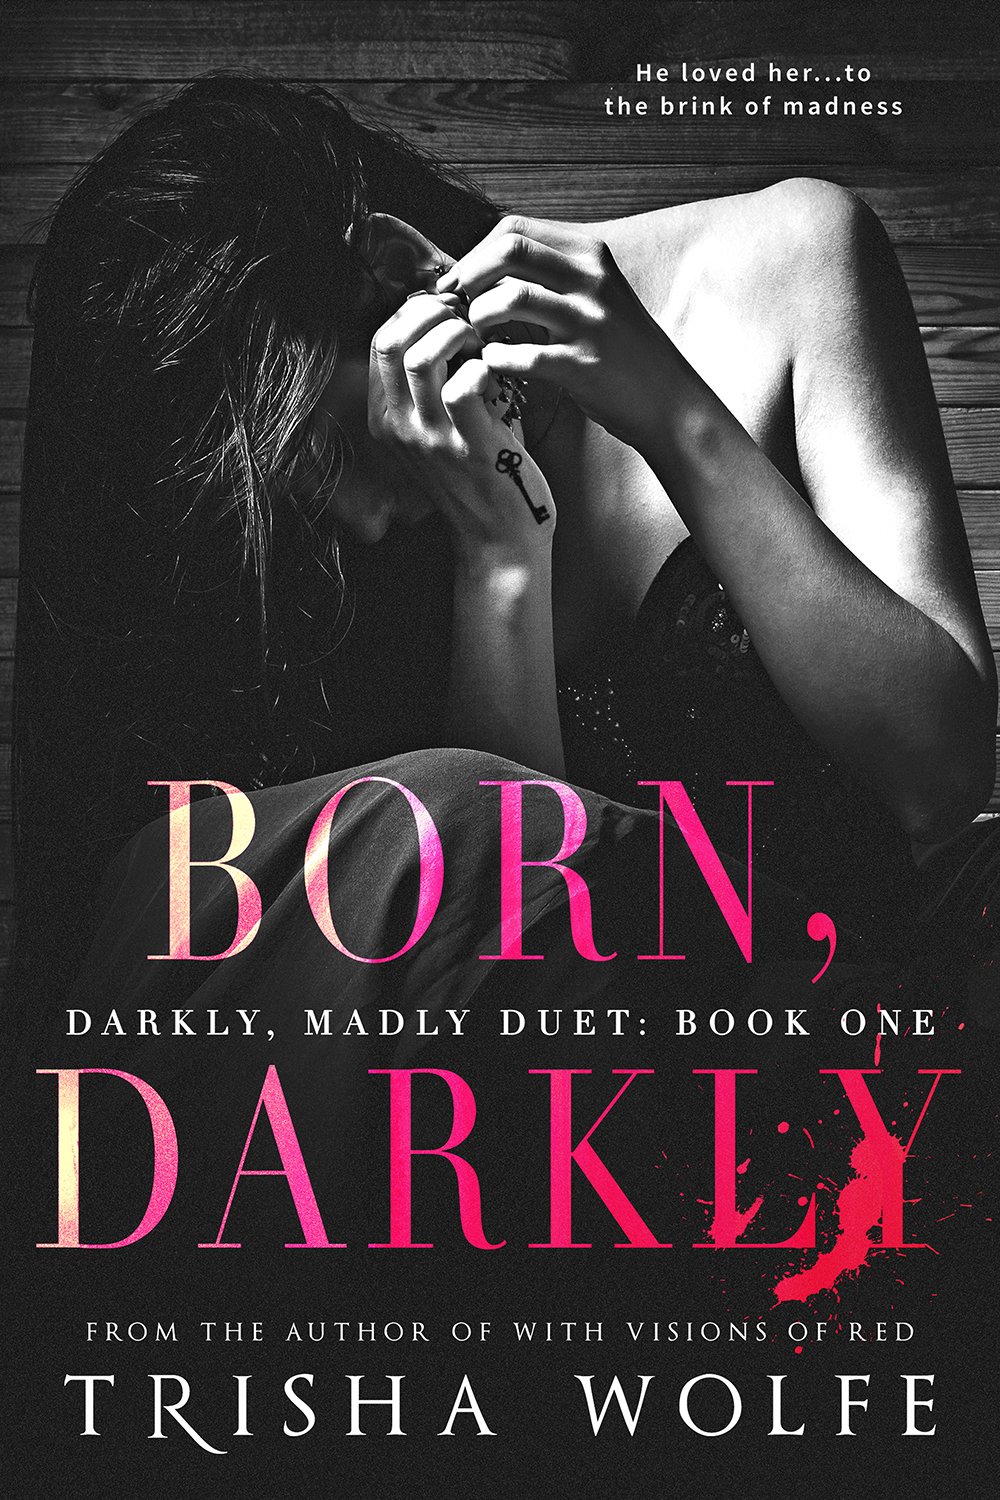 Born, Darkly: Darkly, Madly Duet 1